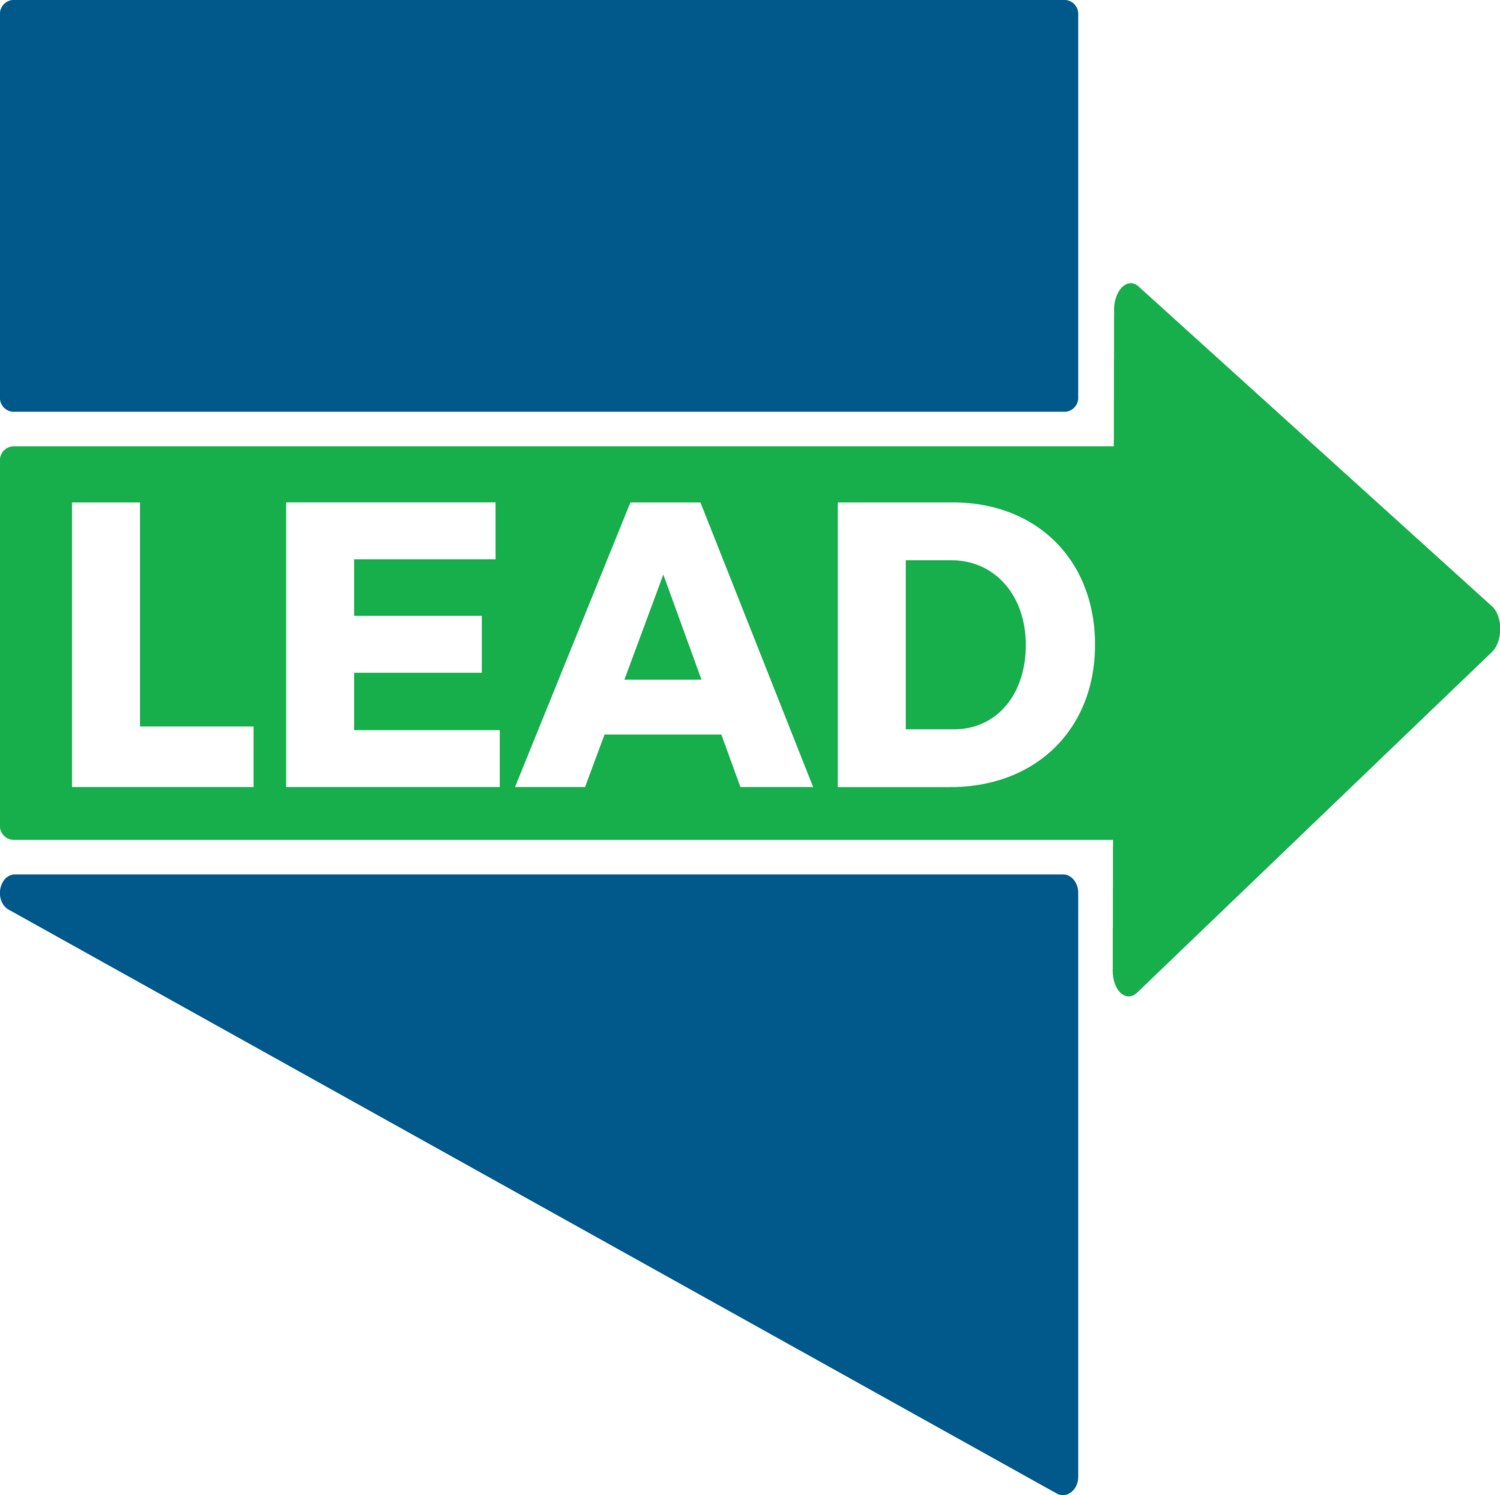 LEAD On, Nevada Nonprofit